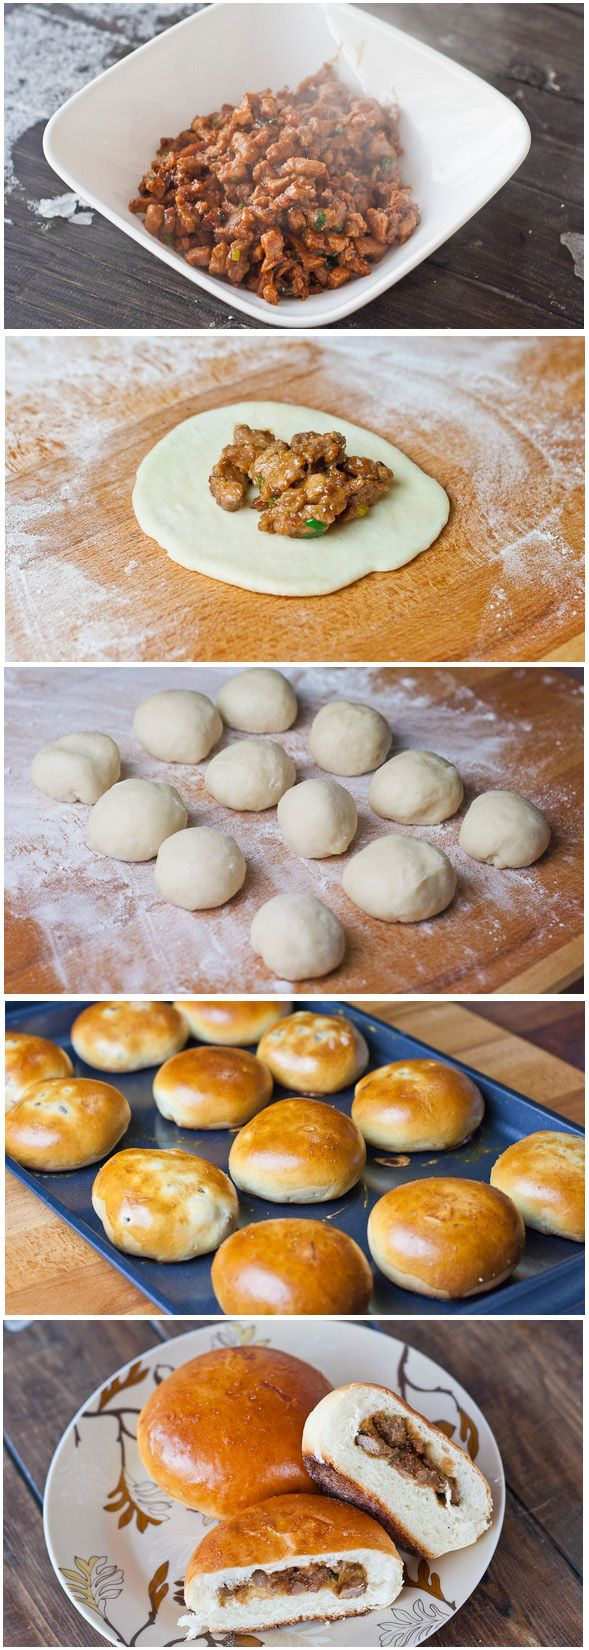 Chinese Style Meat Buns | Homemade Food Recipes